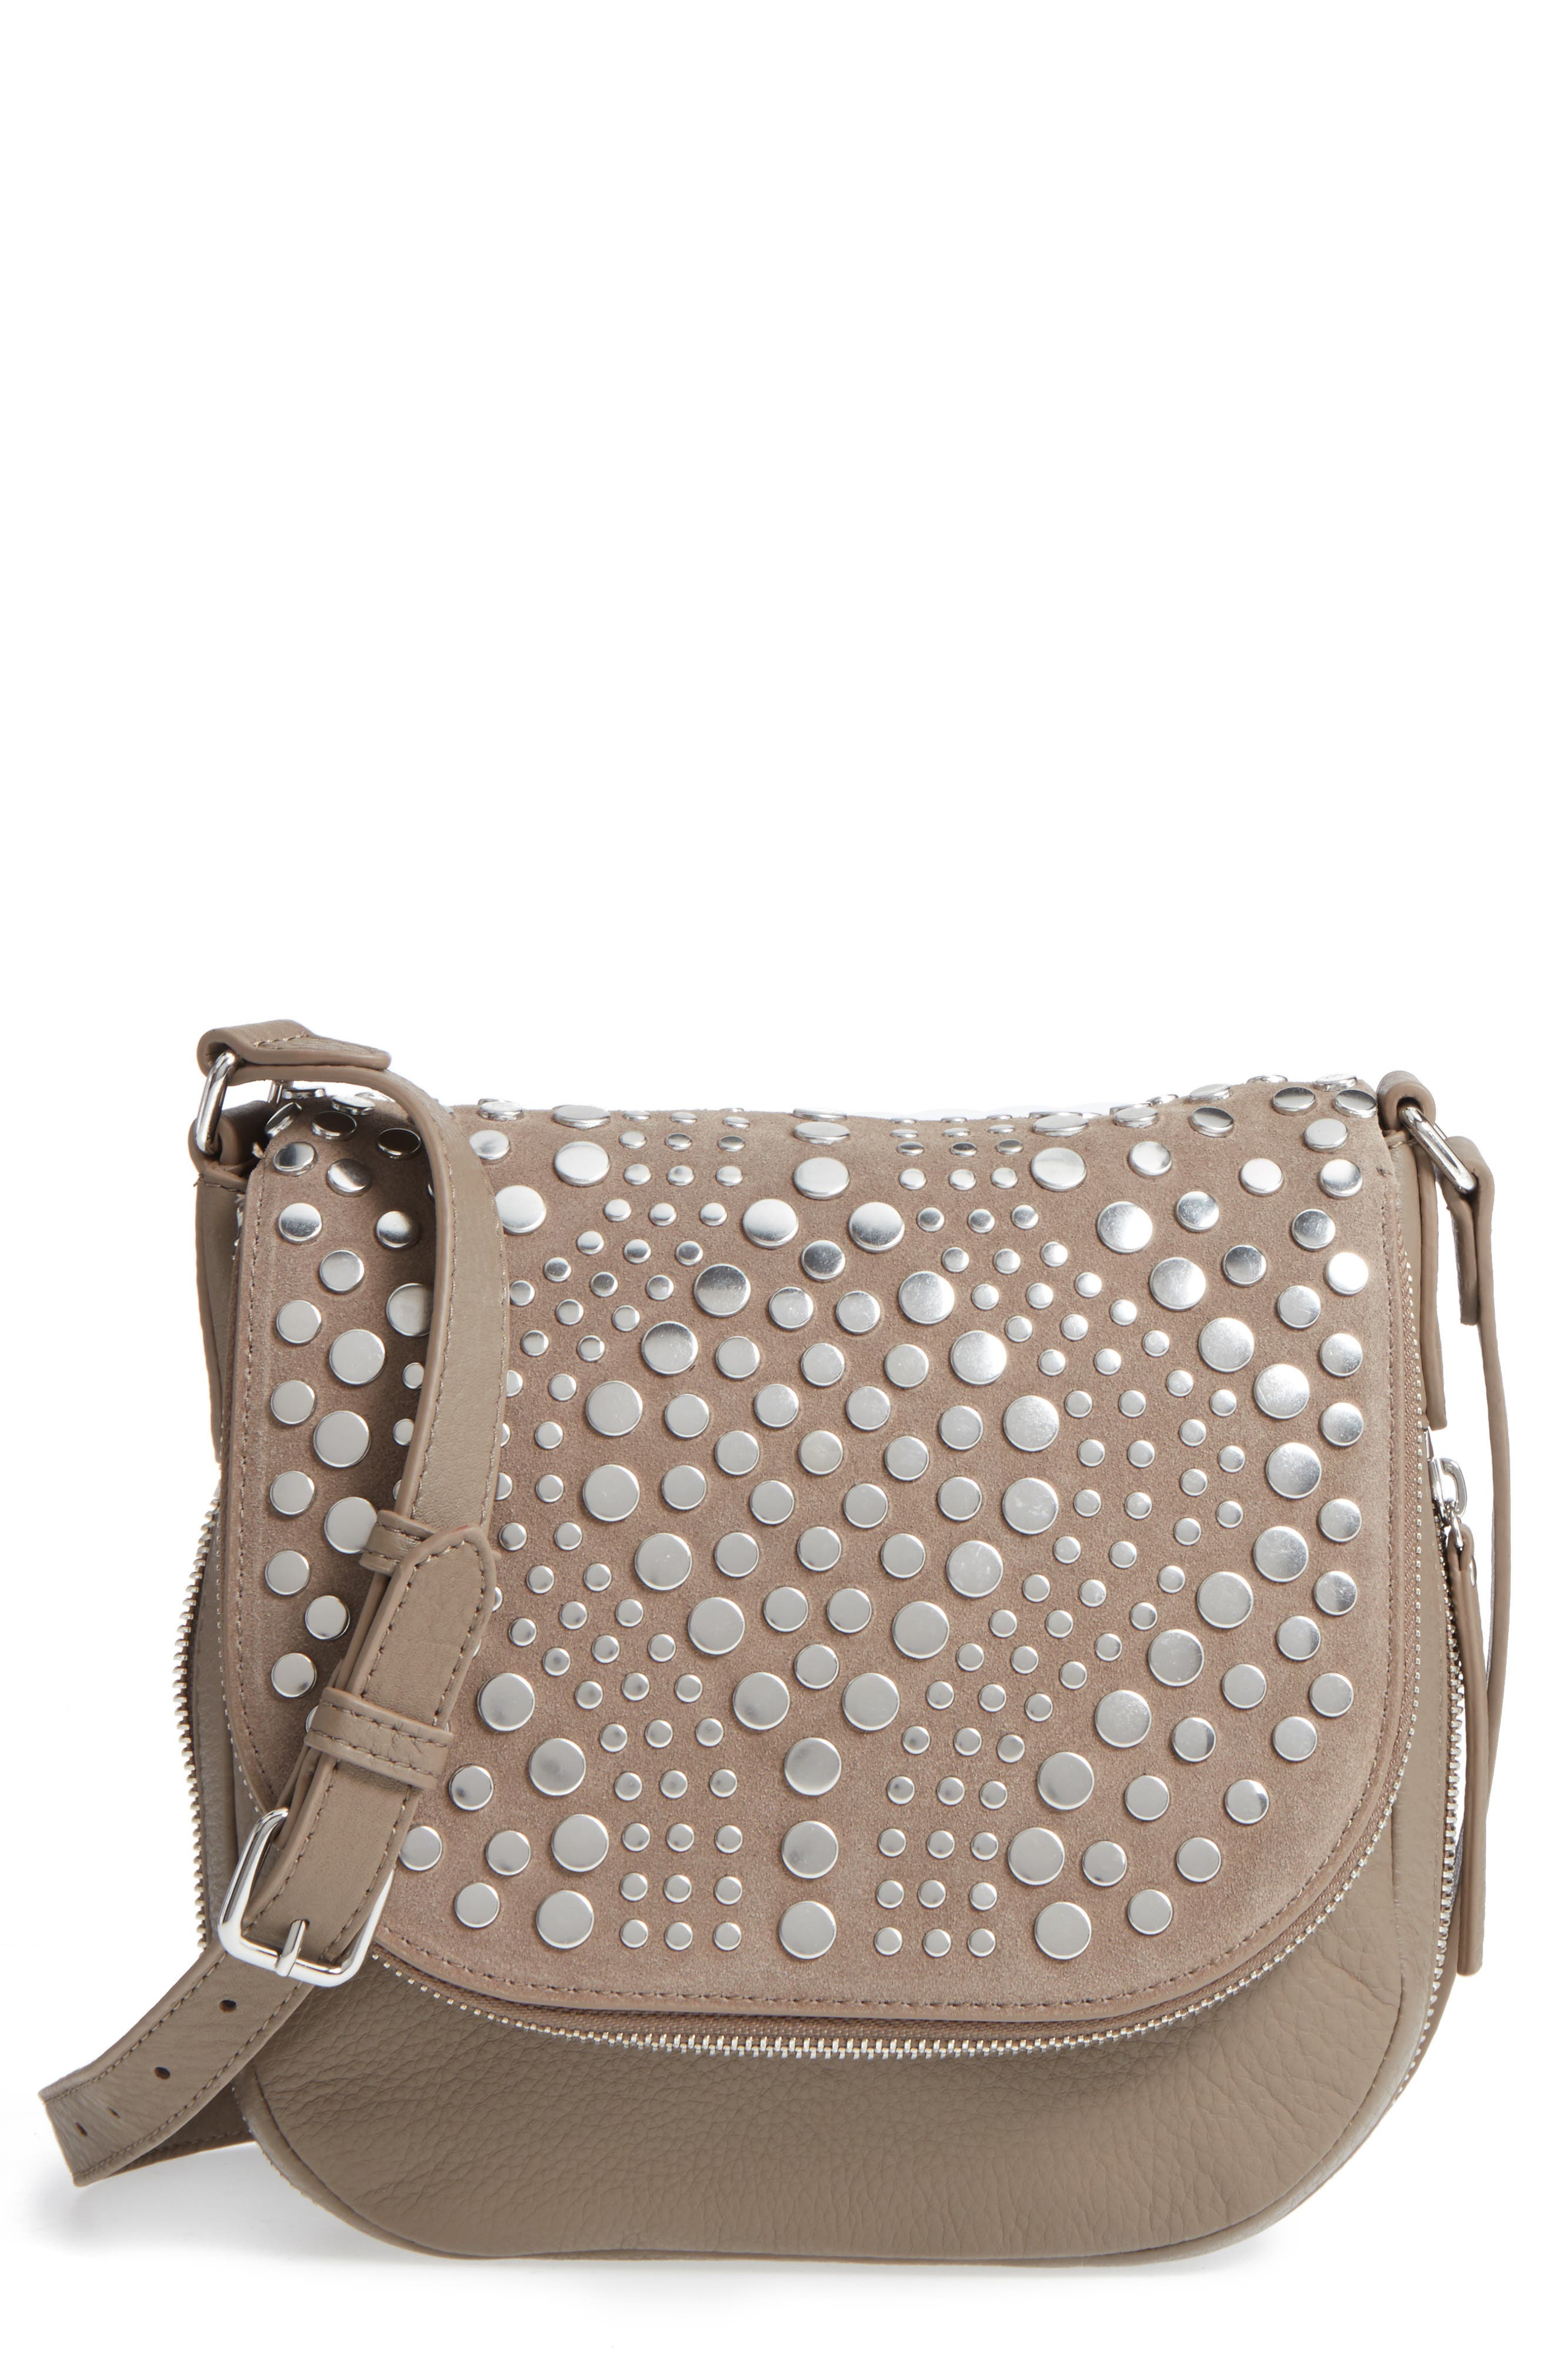 Main Image - Vince Camuto Bonny Studded Leather Crossbody Bag